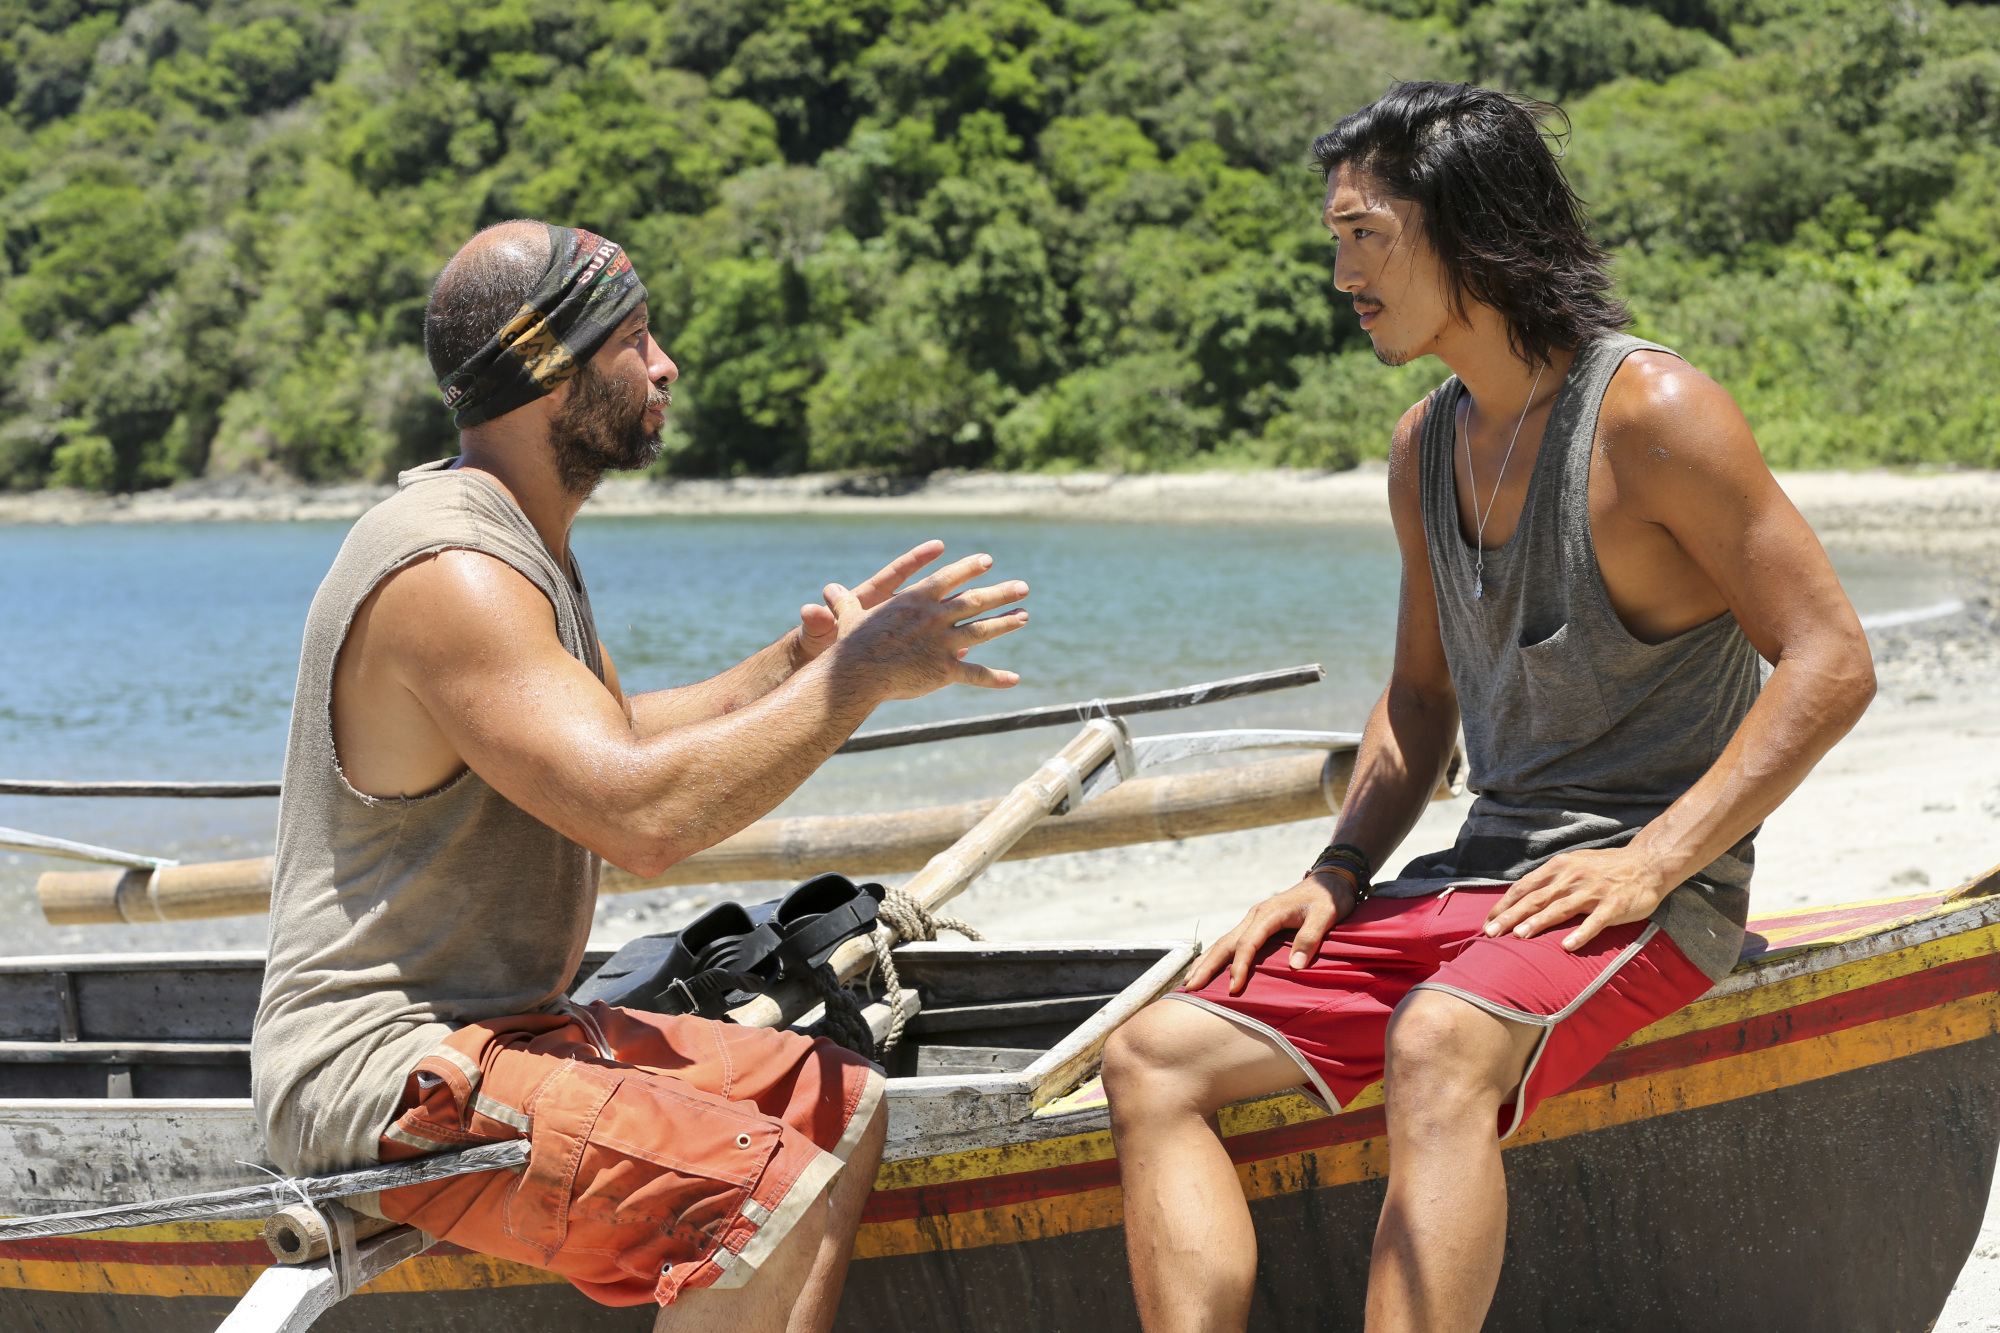 Tony and Woo in Season 28 Episode 8